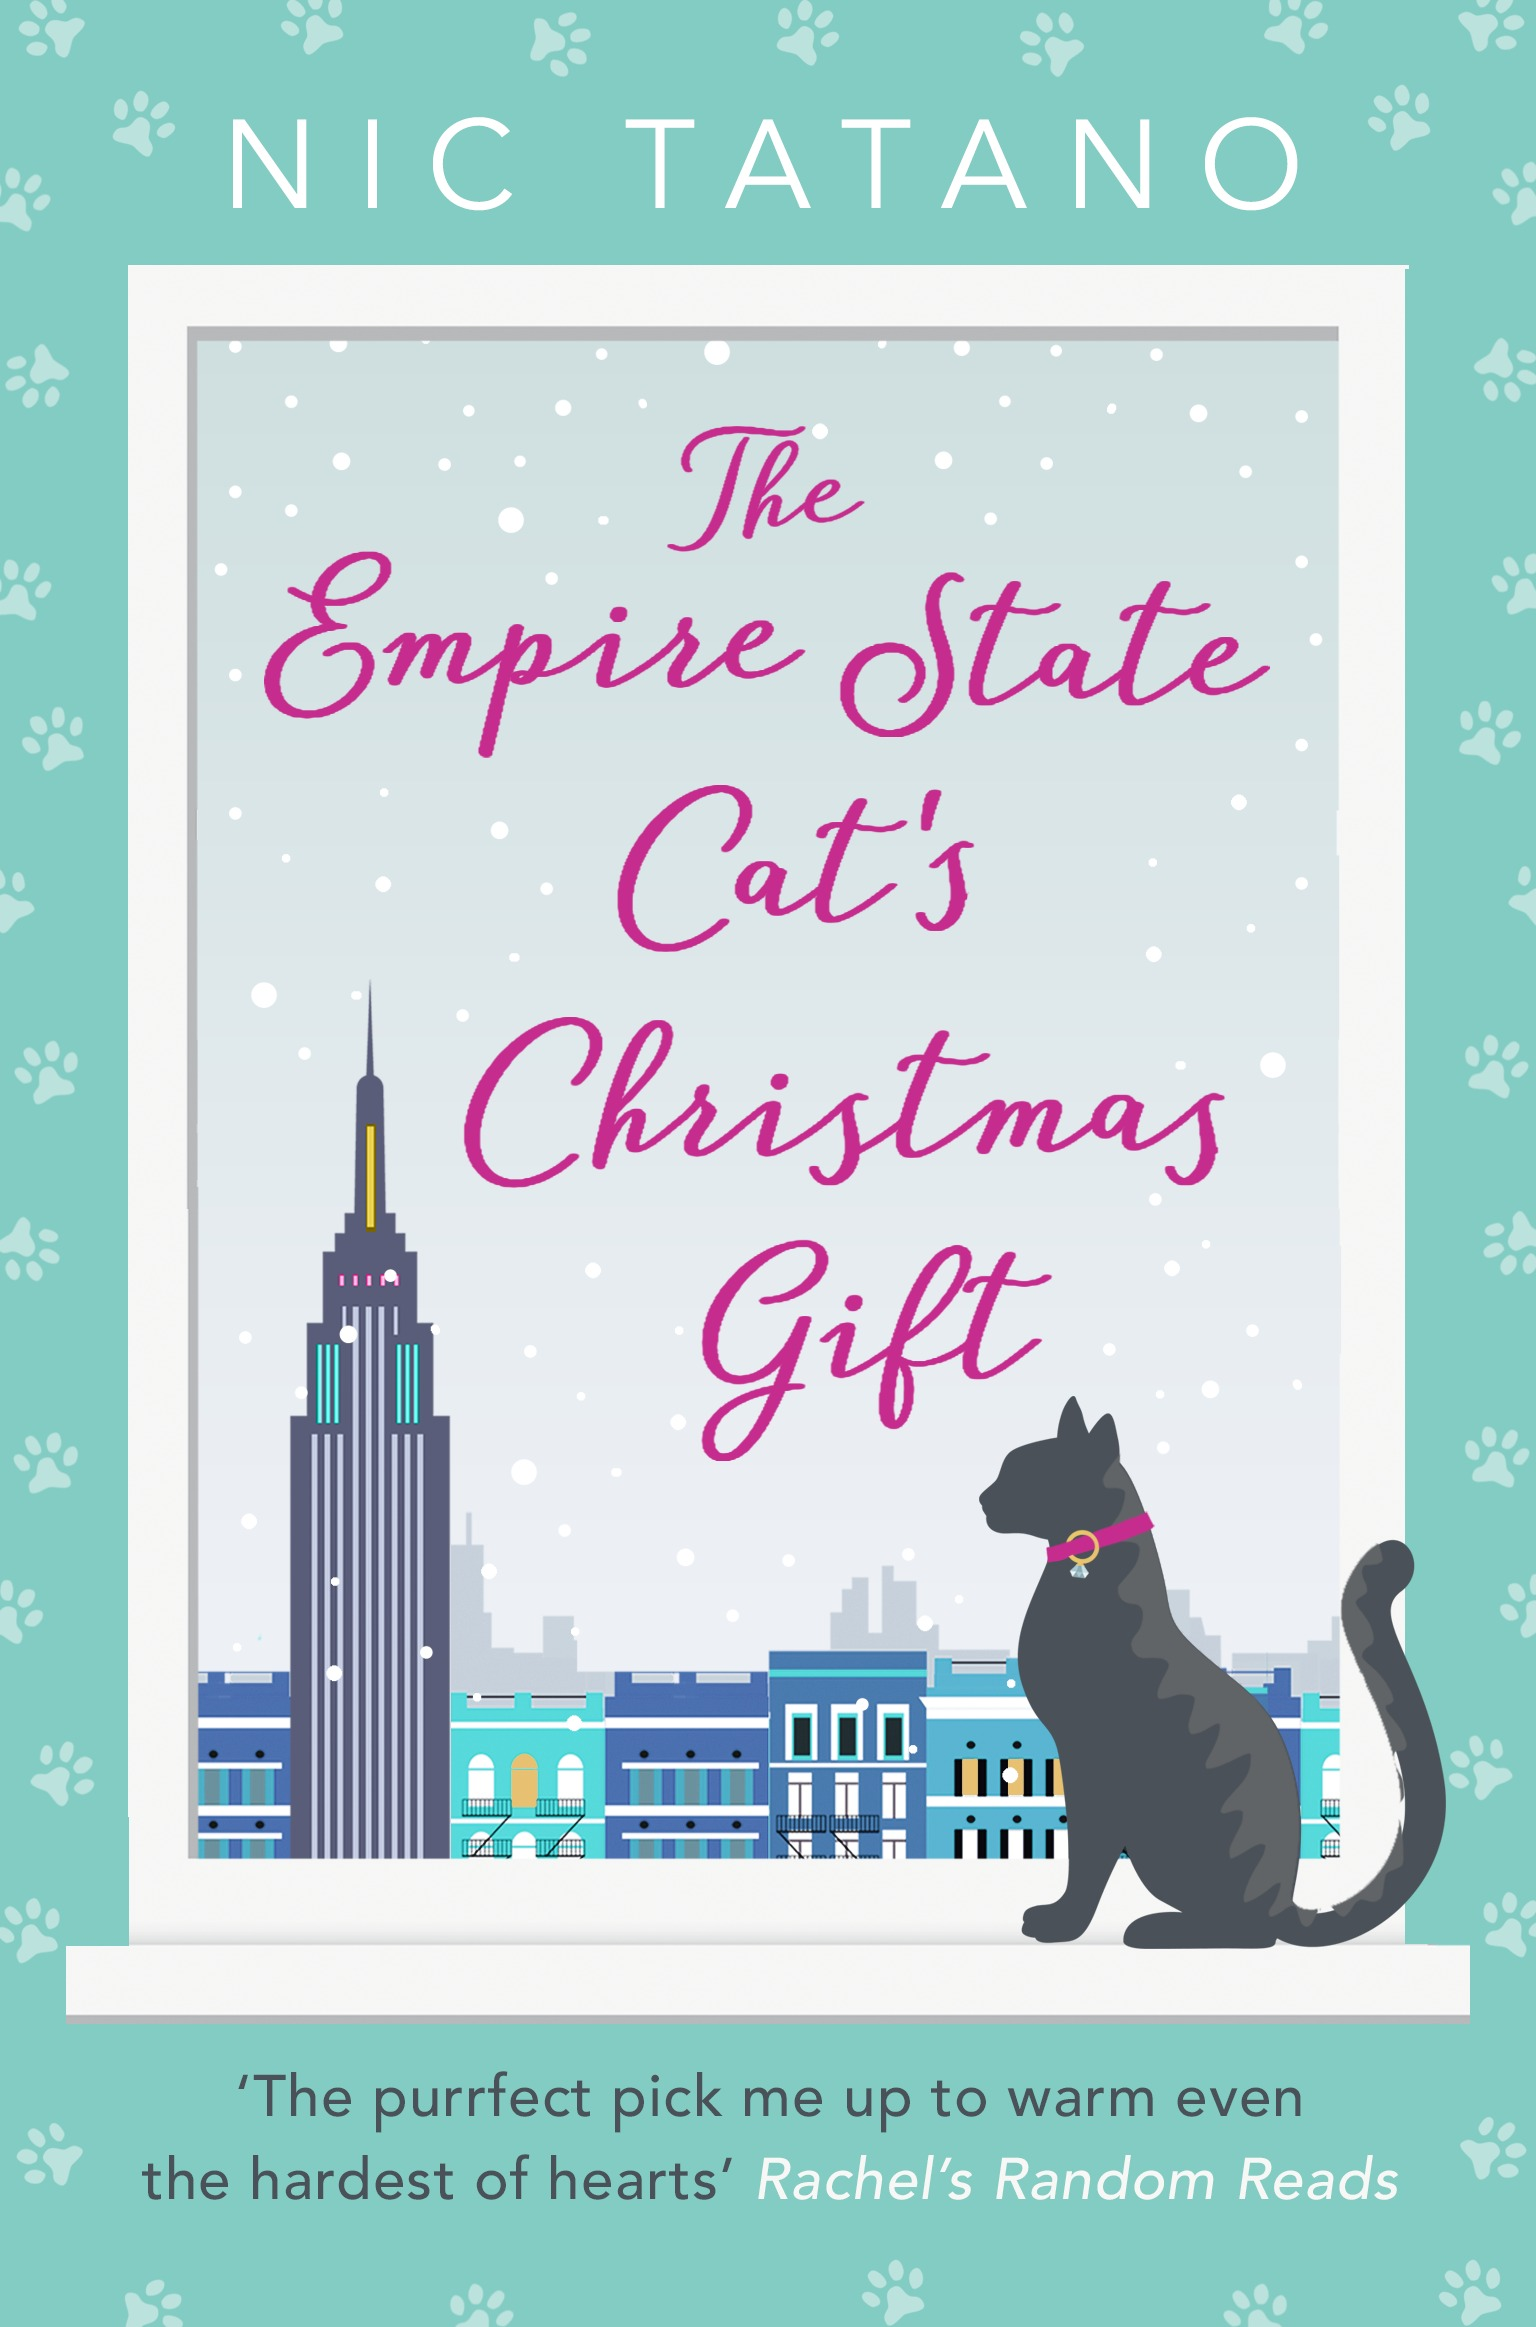 Nic Tatano The Empire State Cat's Christmas Gift 5x7ft 150x210cm vinyl christmas theme picture cloth photography background studio props wooden floor gift christmas socks